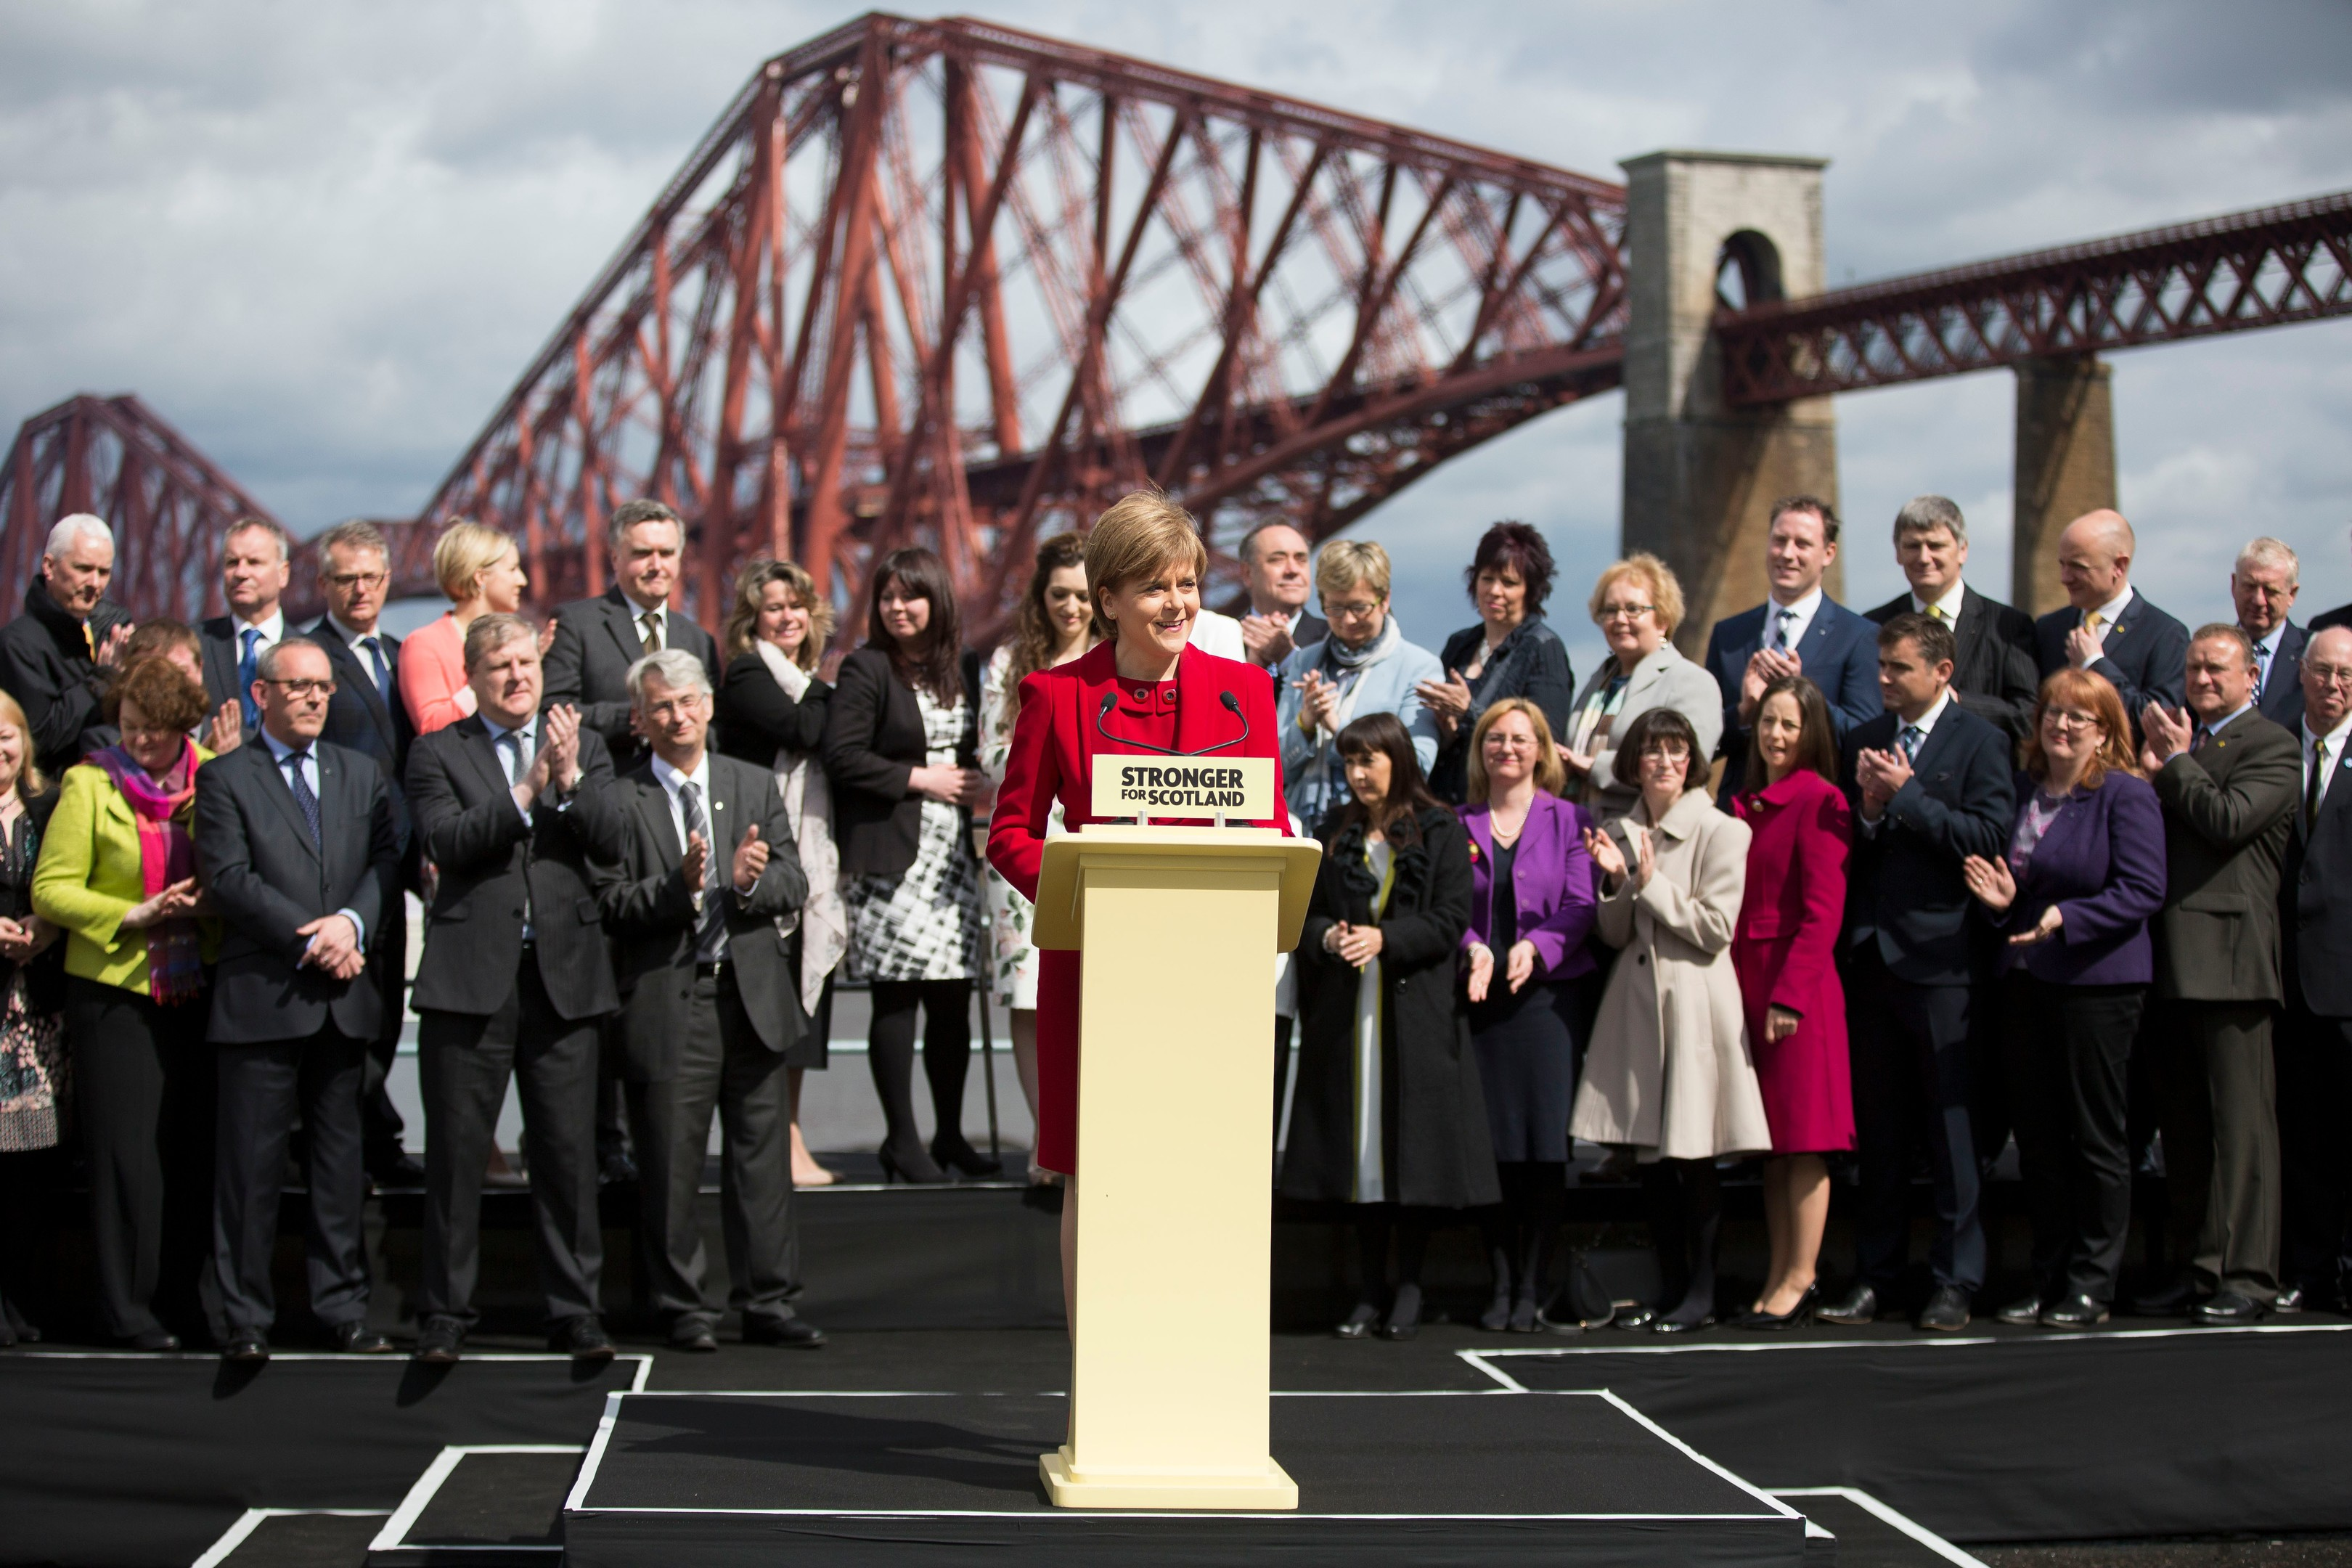 Scotlands First Minister and SNP leader presents the 56 MPs who won seats in the General Election in front of the iconic Forth Rail Bridge in South Queensferry Scotland  Photograph by James Williamson